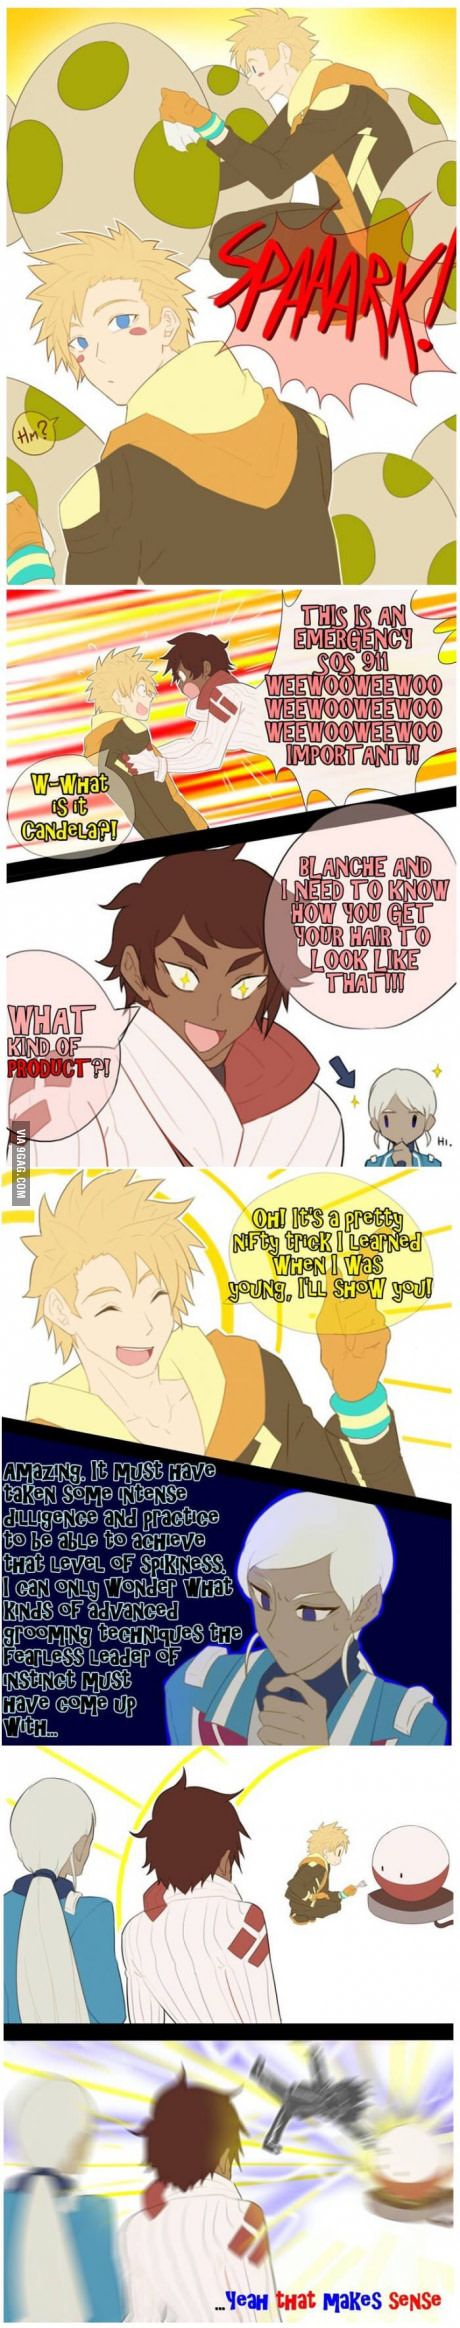 "Instinct XD I love when the teams get along instead of some petty Mystic ""Im better than you"" arguement"